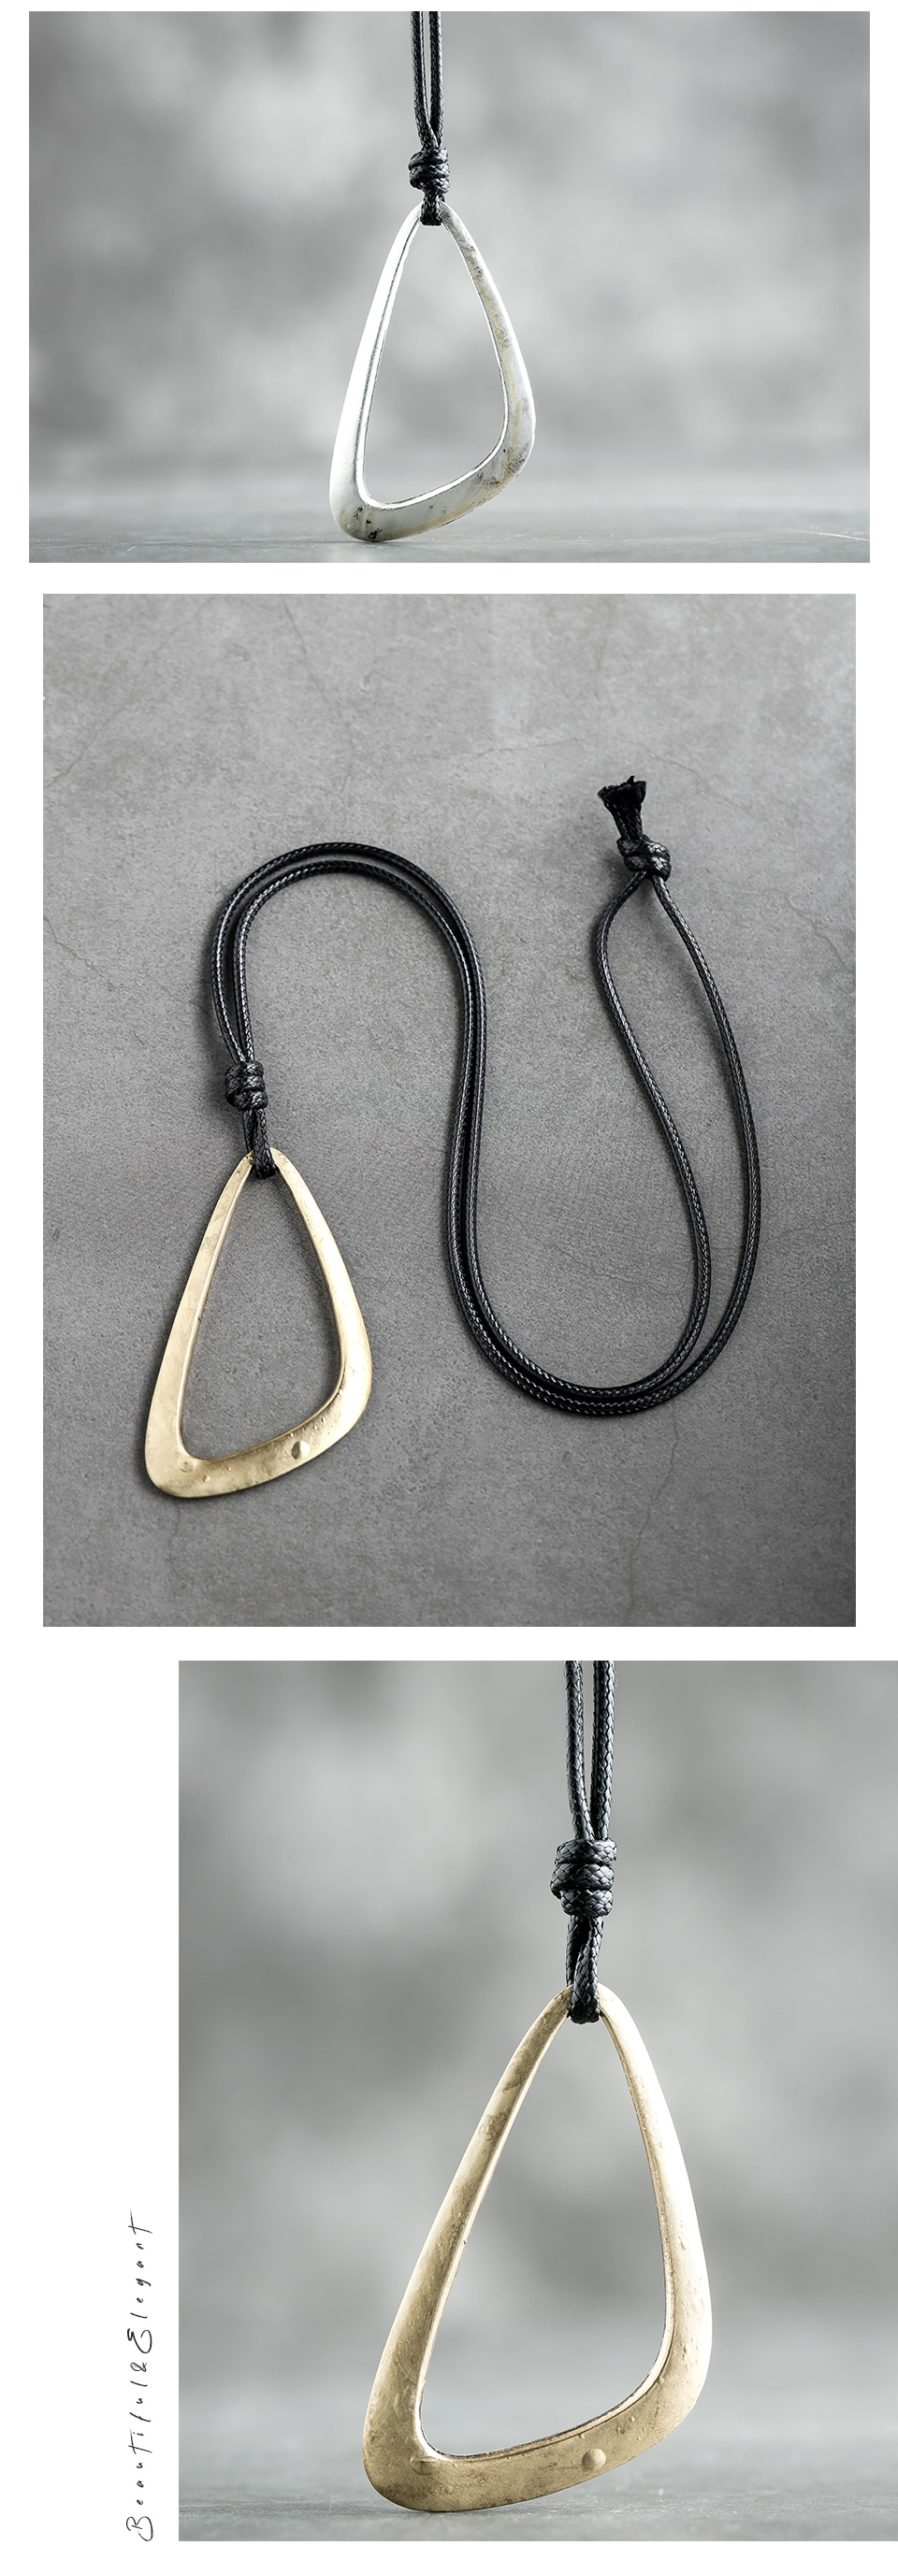 Vintage Jewelry Long Necklaces for Women Triangle Pendant suspension jewellery Statement necklaces & pendants Chokers 2020 New